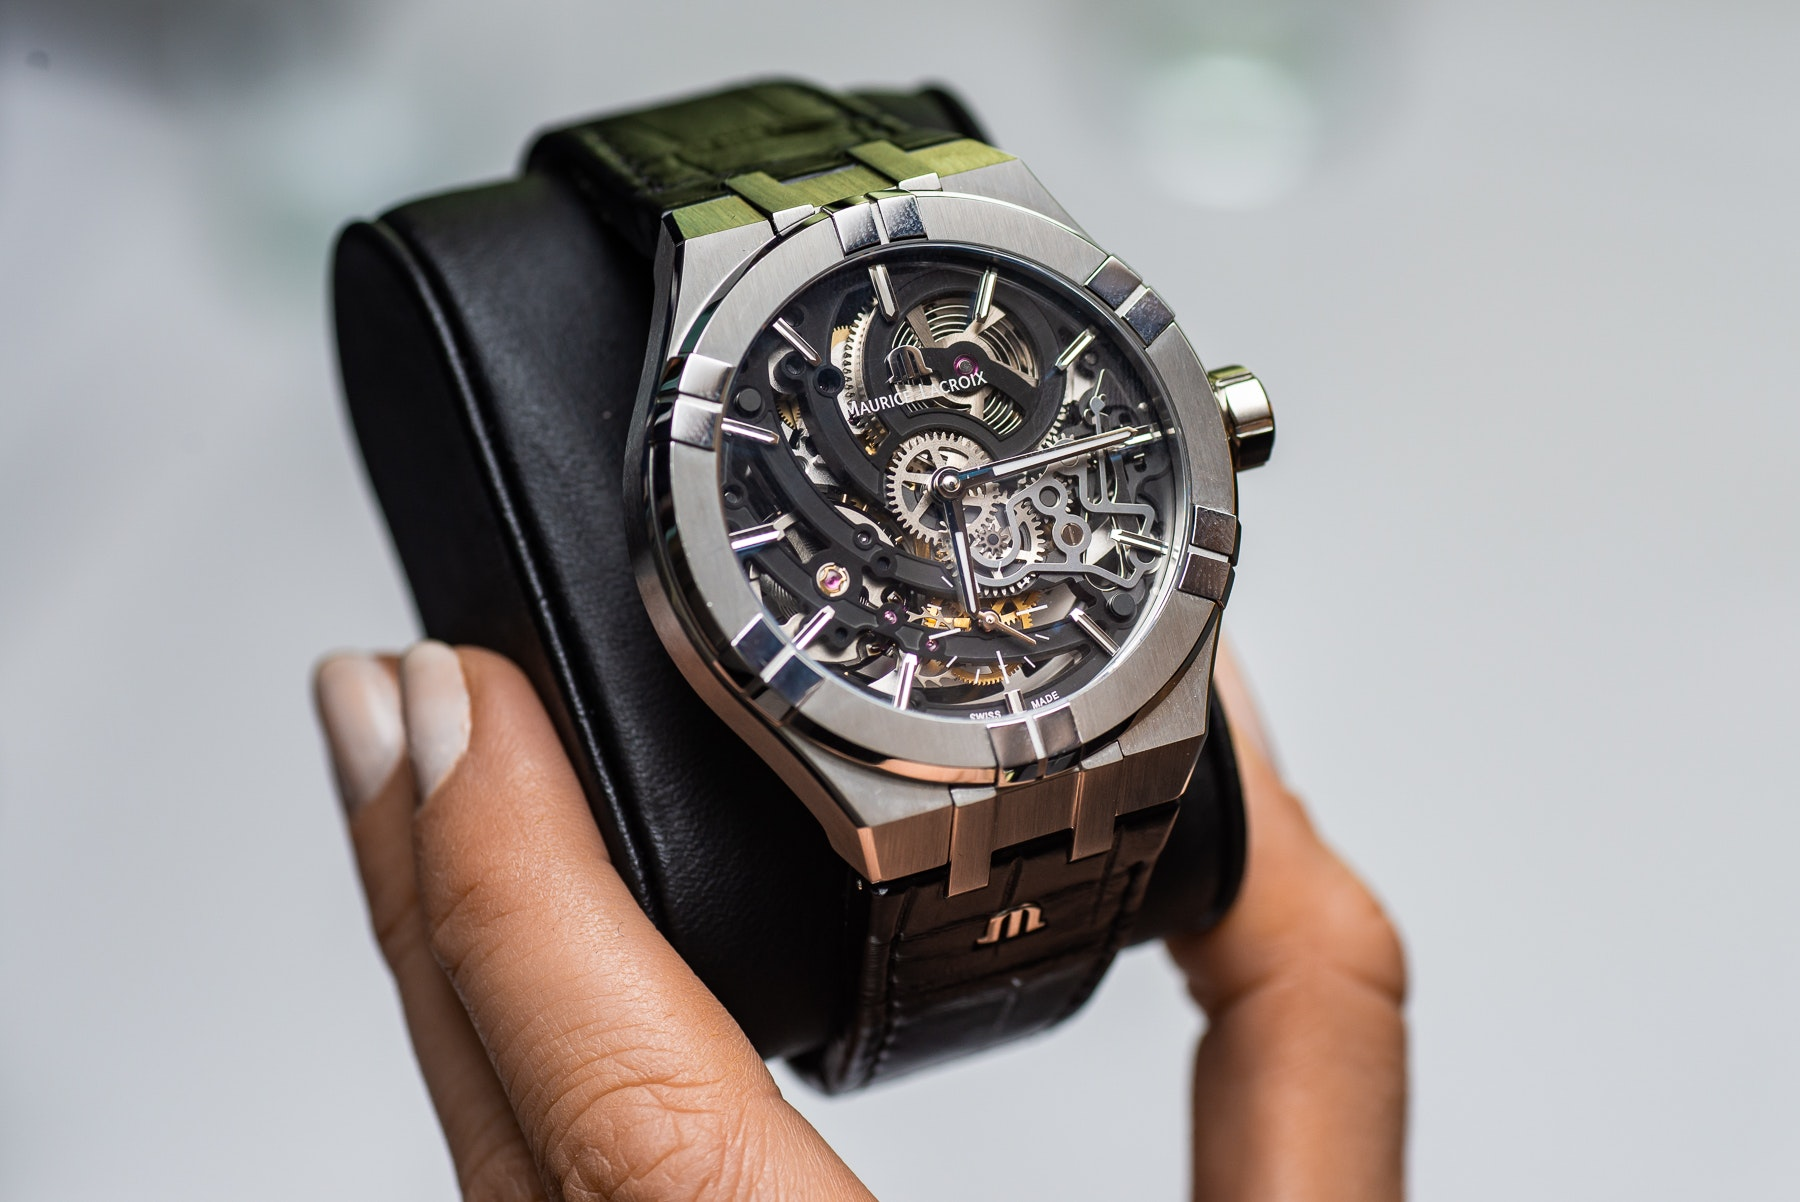 Maurice Lacroix Highlights: New models for the Aikon collection